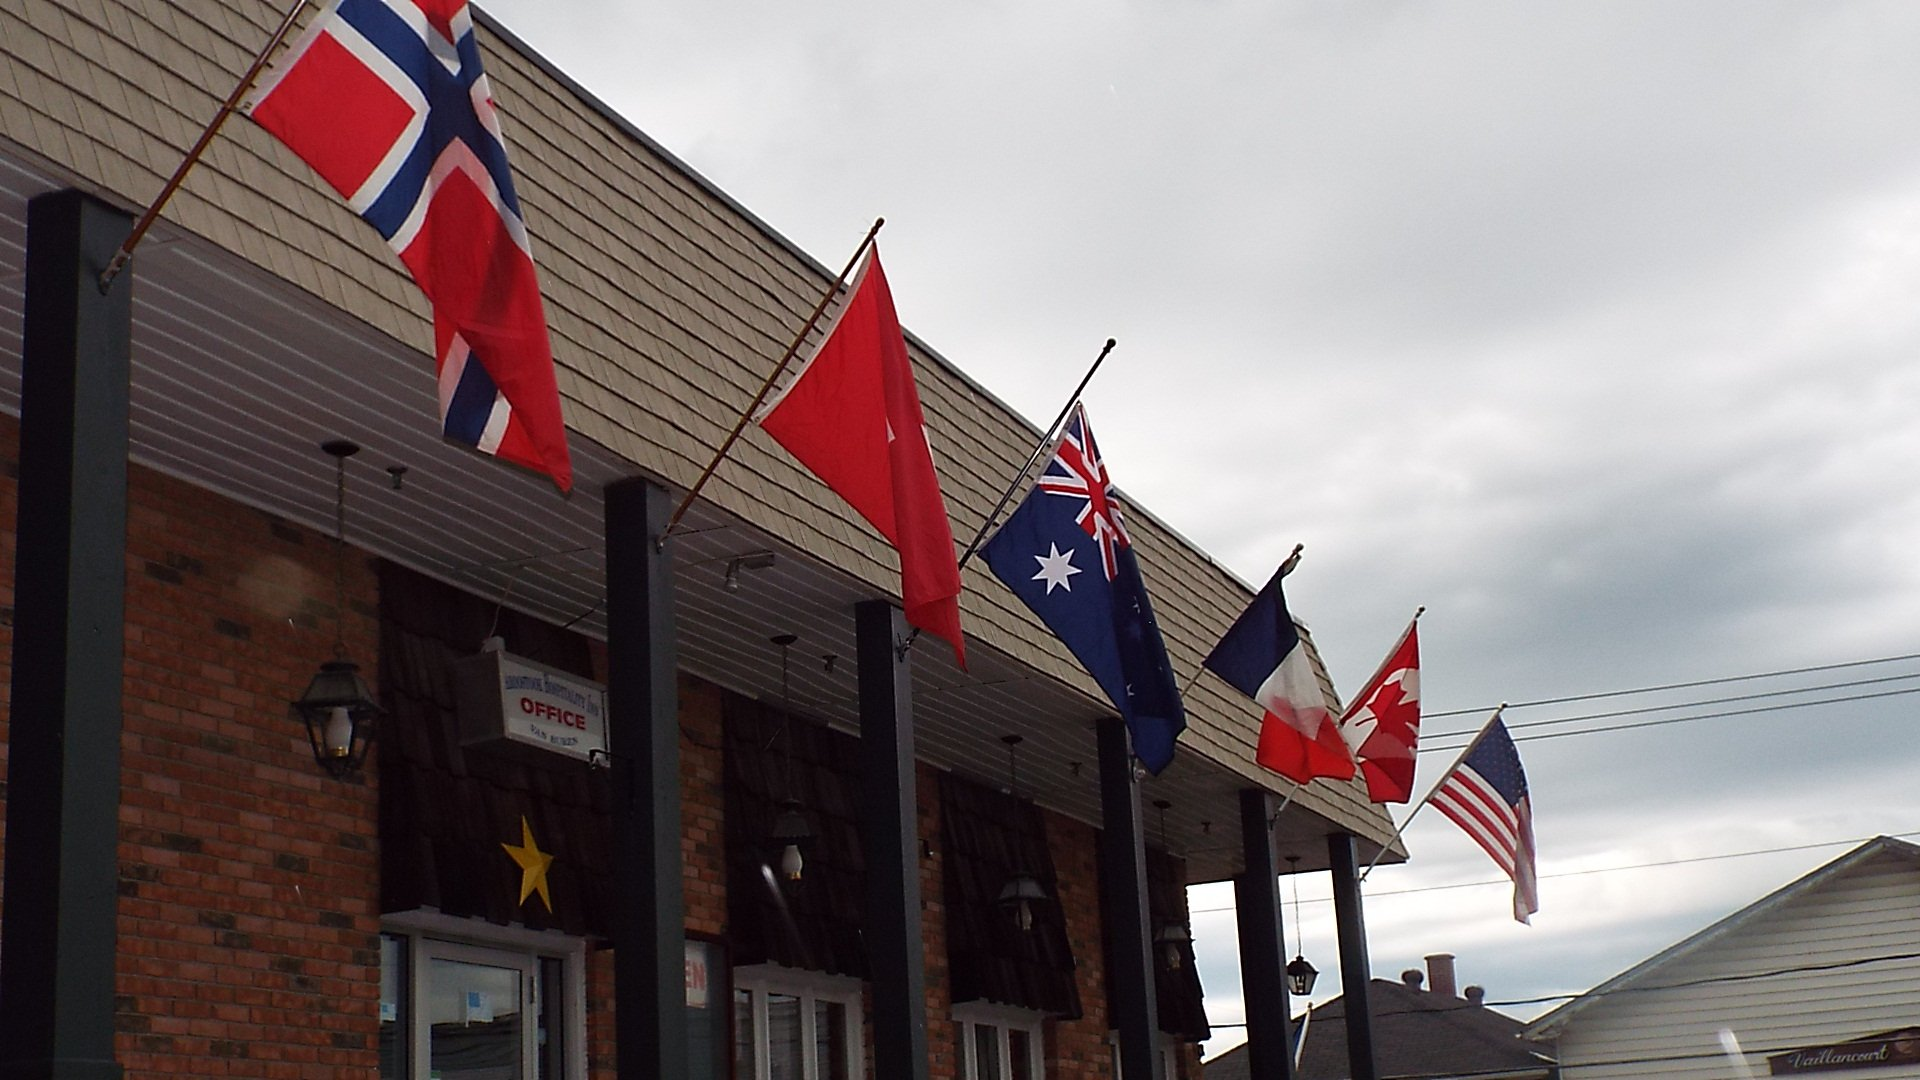 The parking lot side of the Aroostook Hospitality Inn Van Buren. Theses are some of the Countries coming to visit us this summer. Can you identify them?